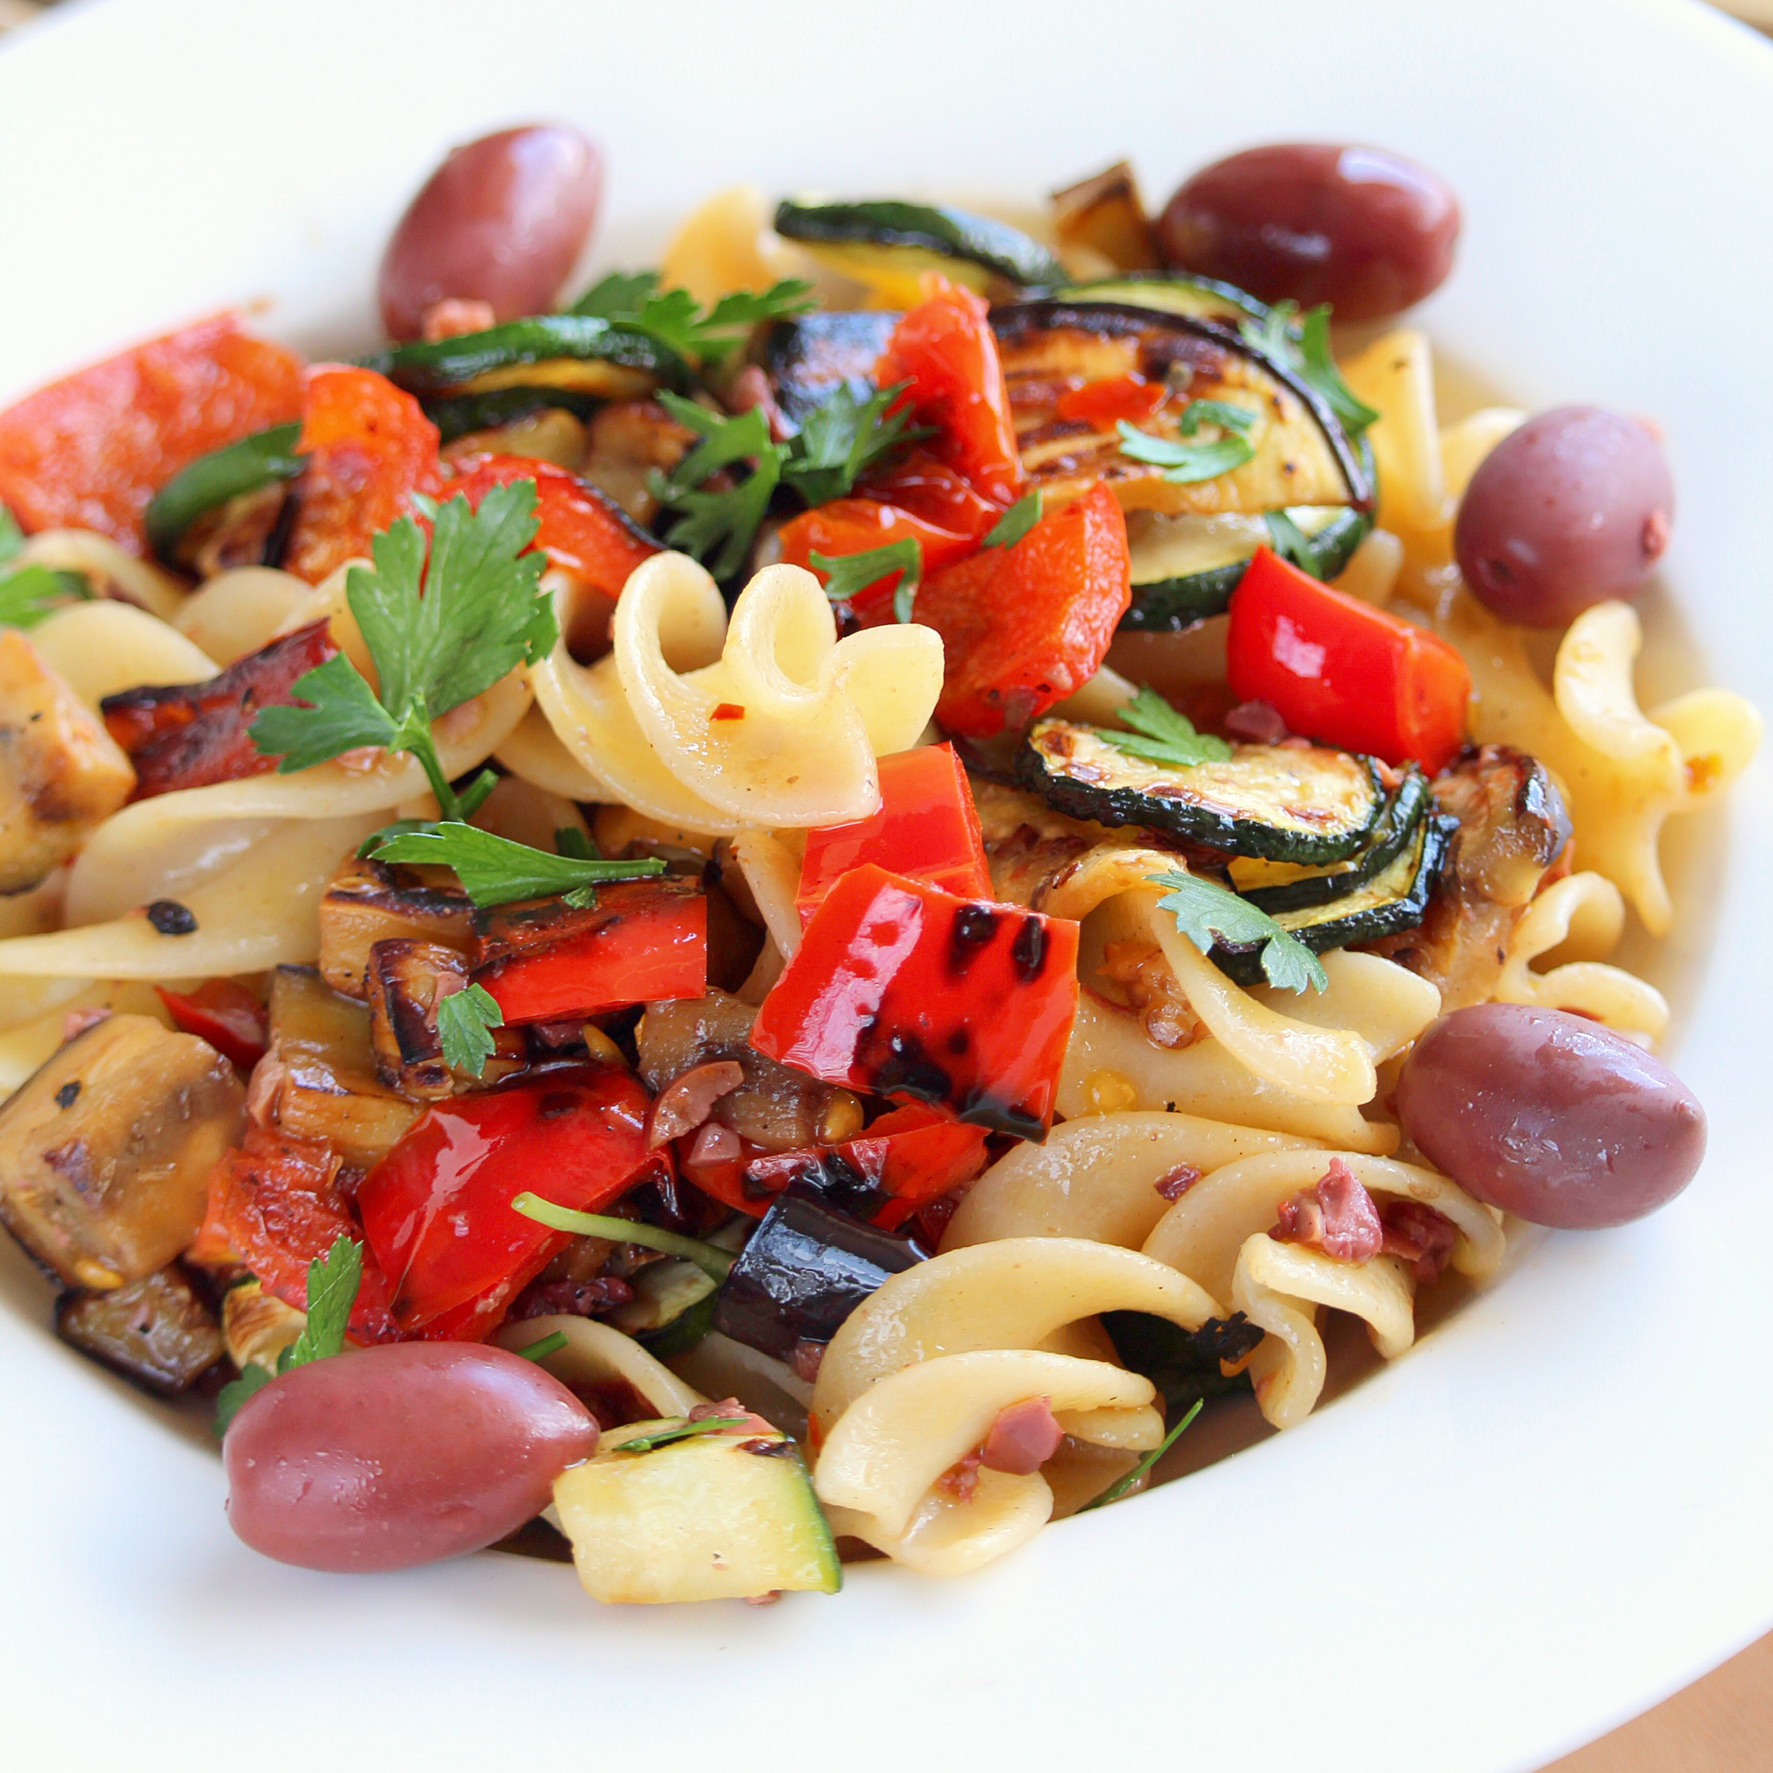 Vegan Italian Pasta Salad with Vegetables and Olives Buckwheat Queen